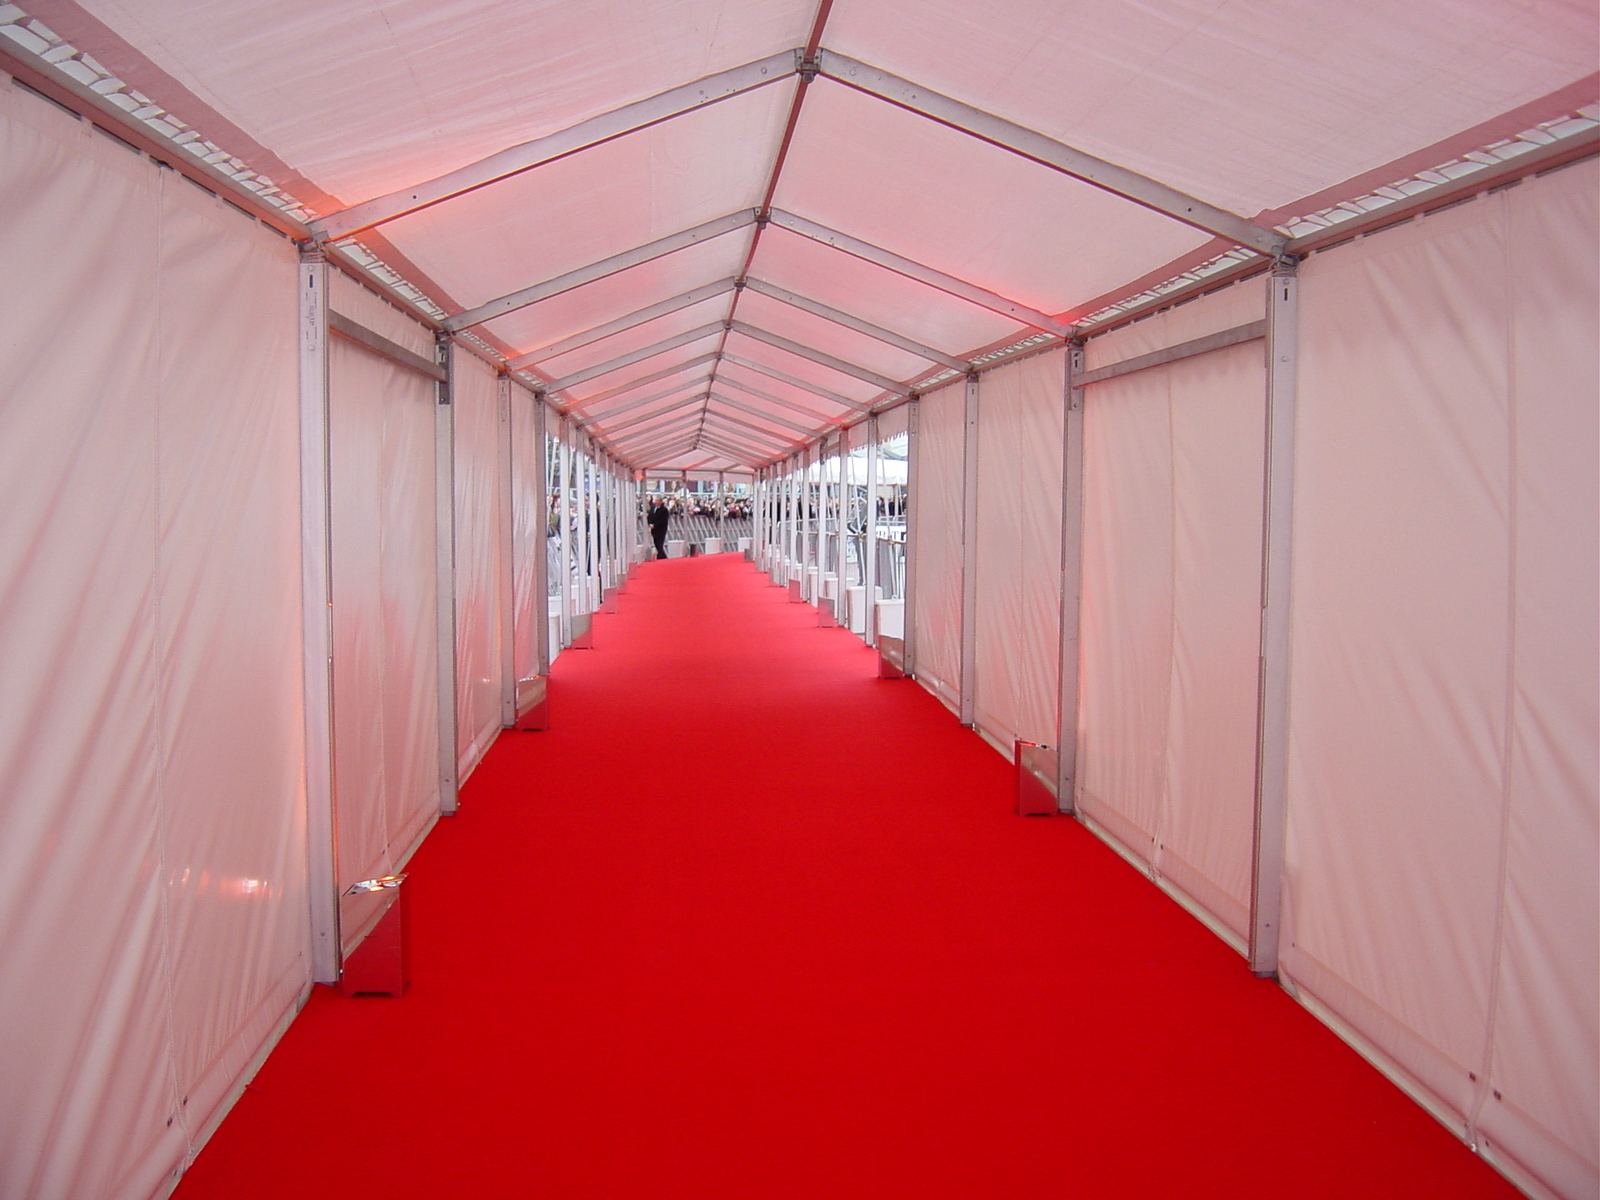 Covered walkways for events Walkways & Temporary Structure